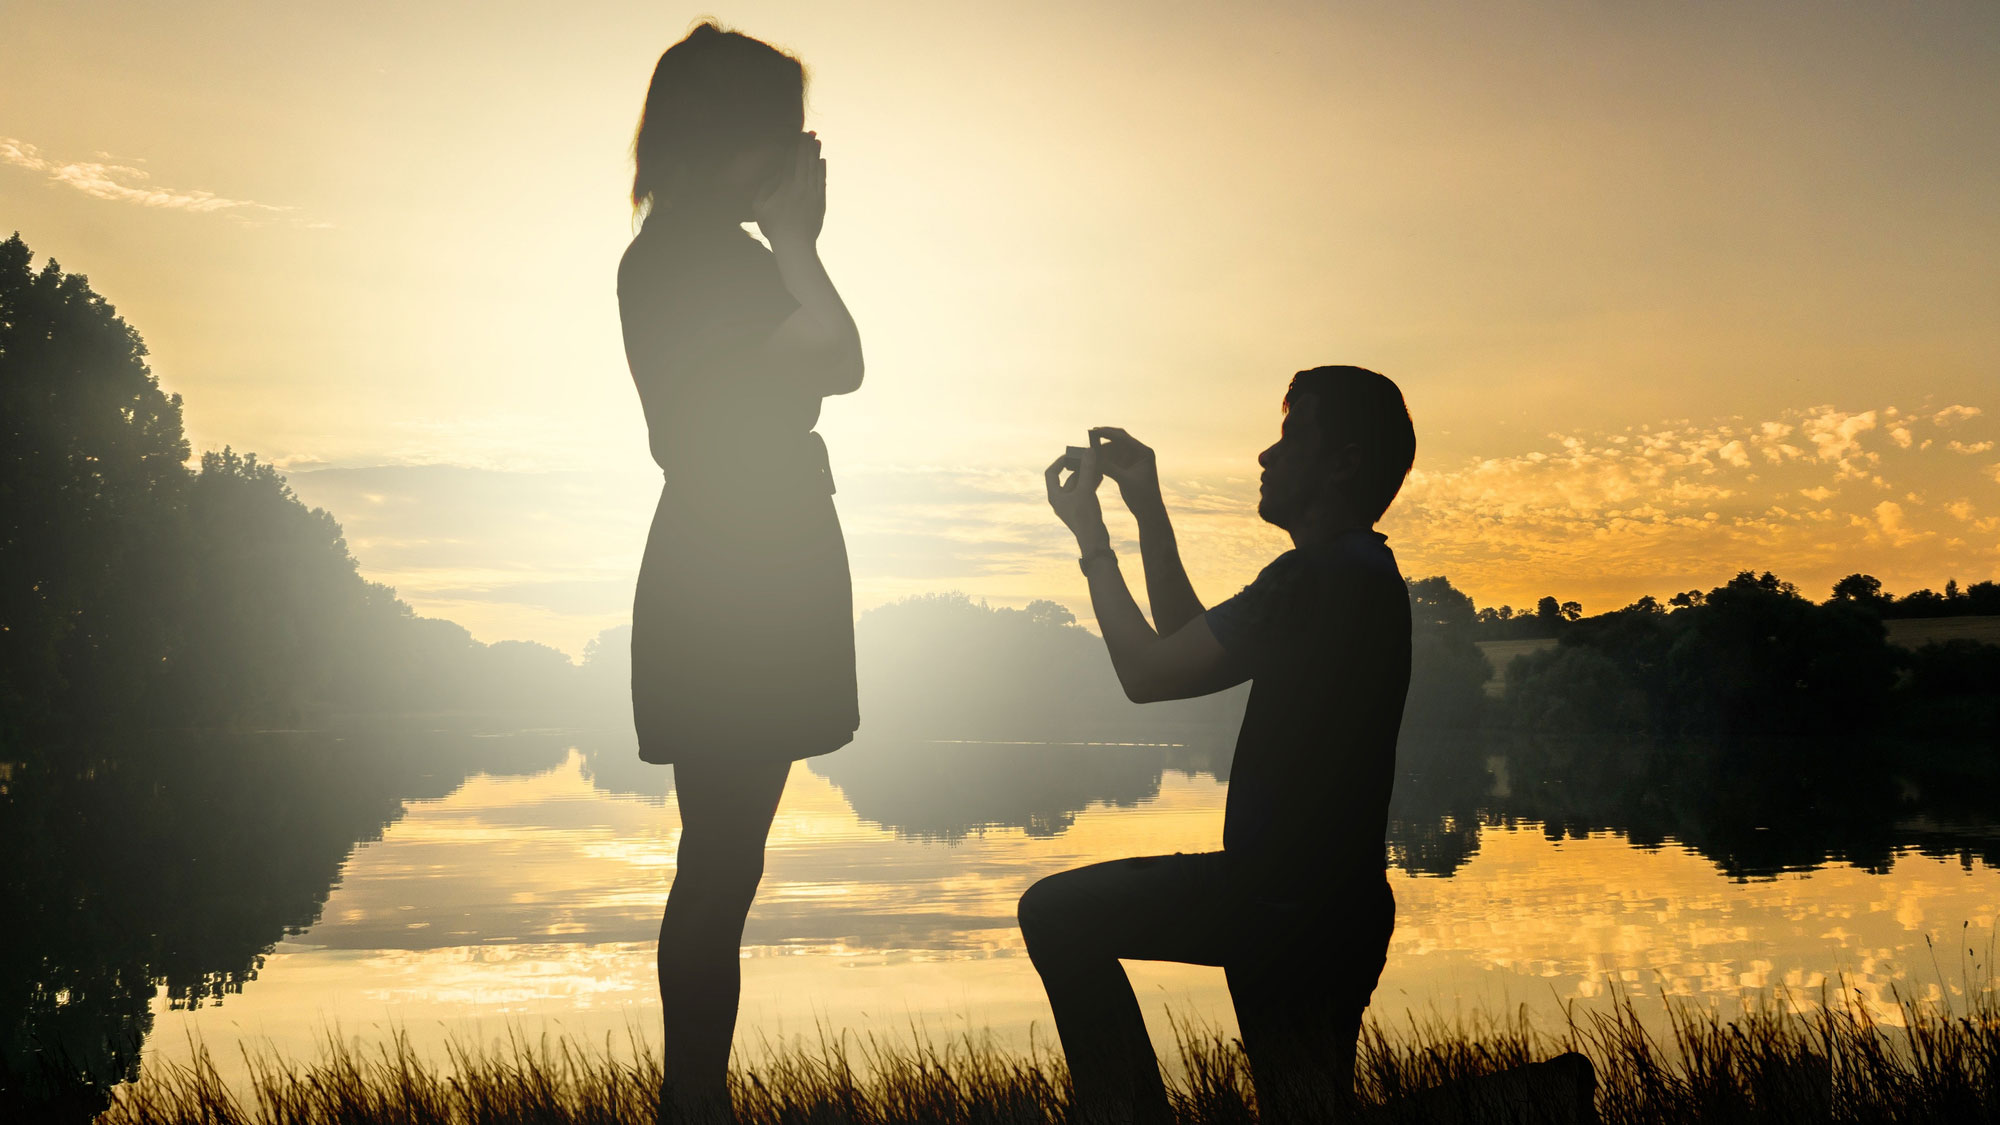 Matrimony Men: Reasons Why Guys Want to Get Hitched